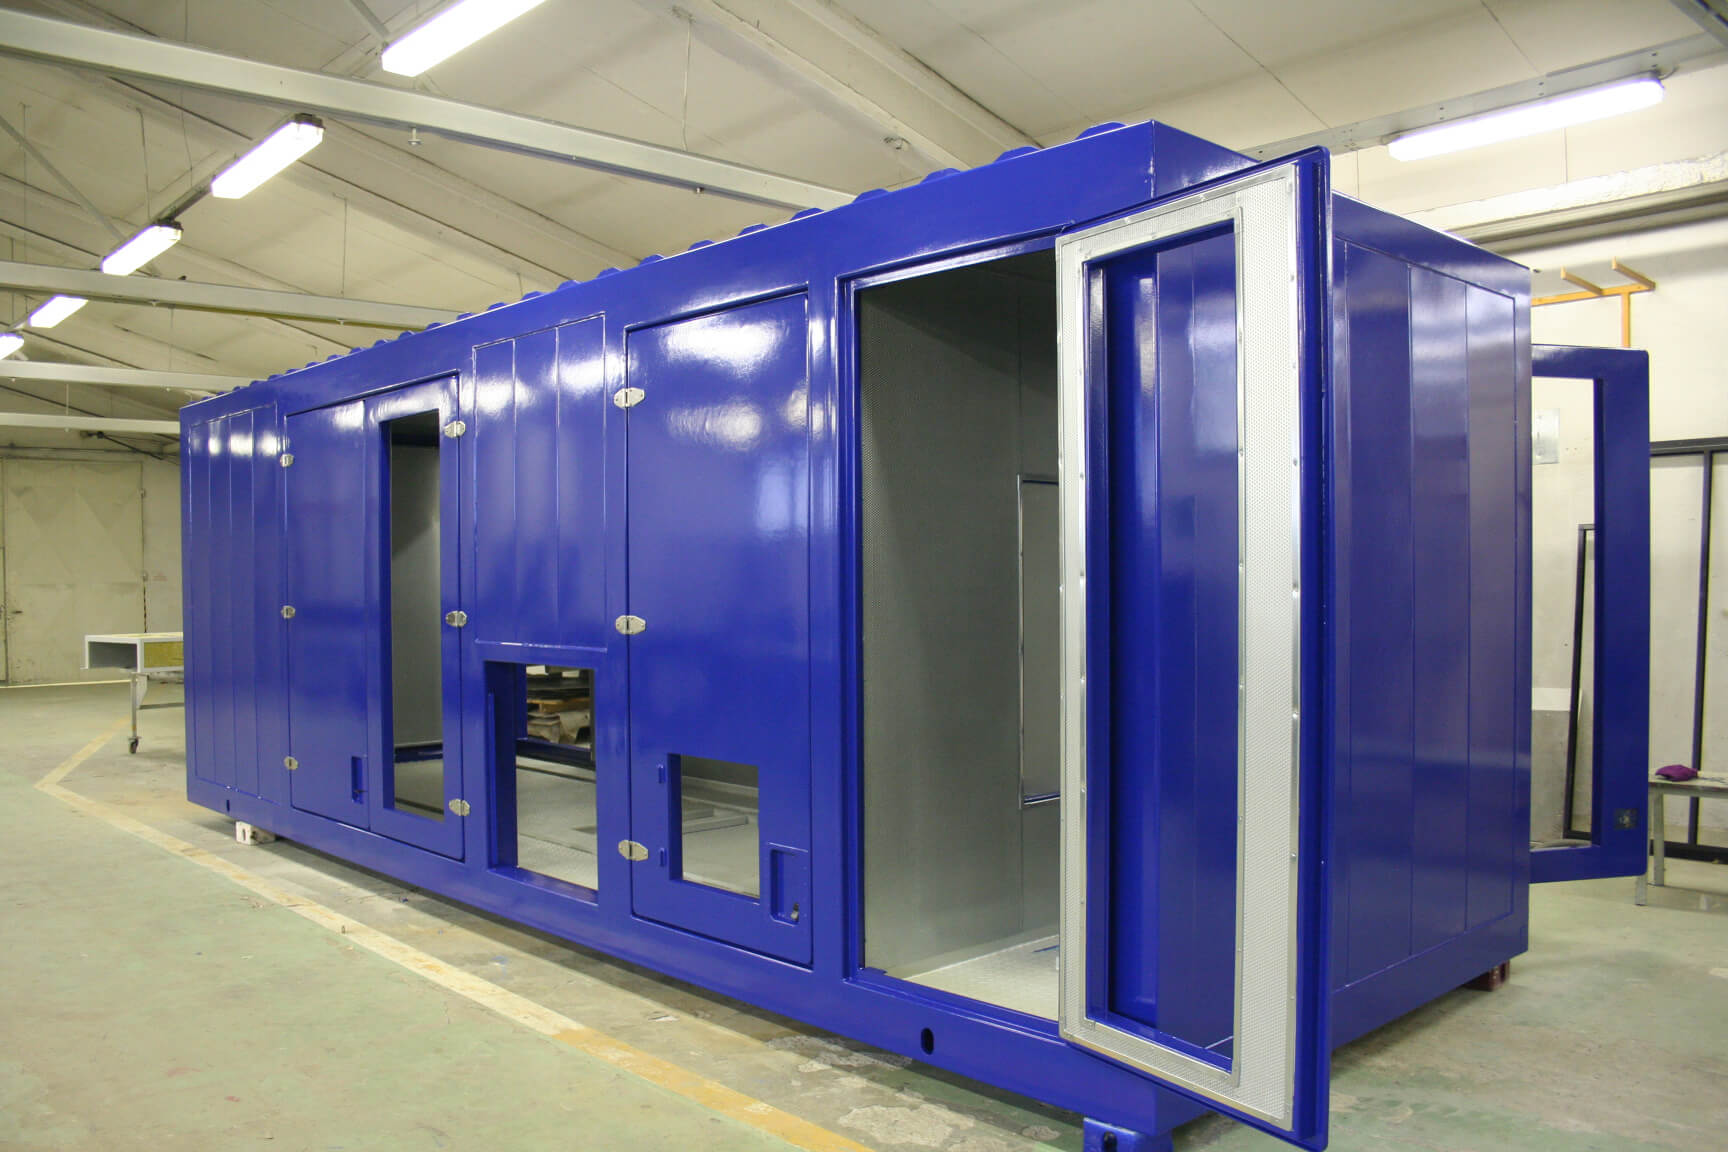 Interior Design For Container Umbau Photo Of Modification Of Sea Containers